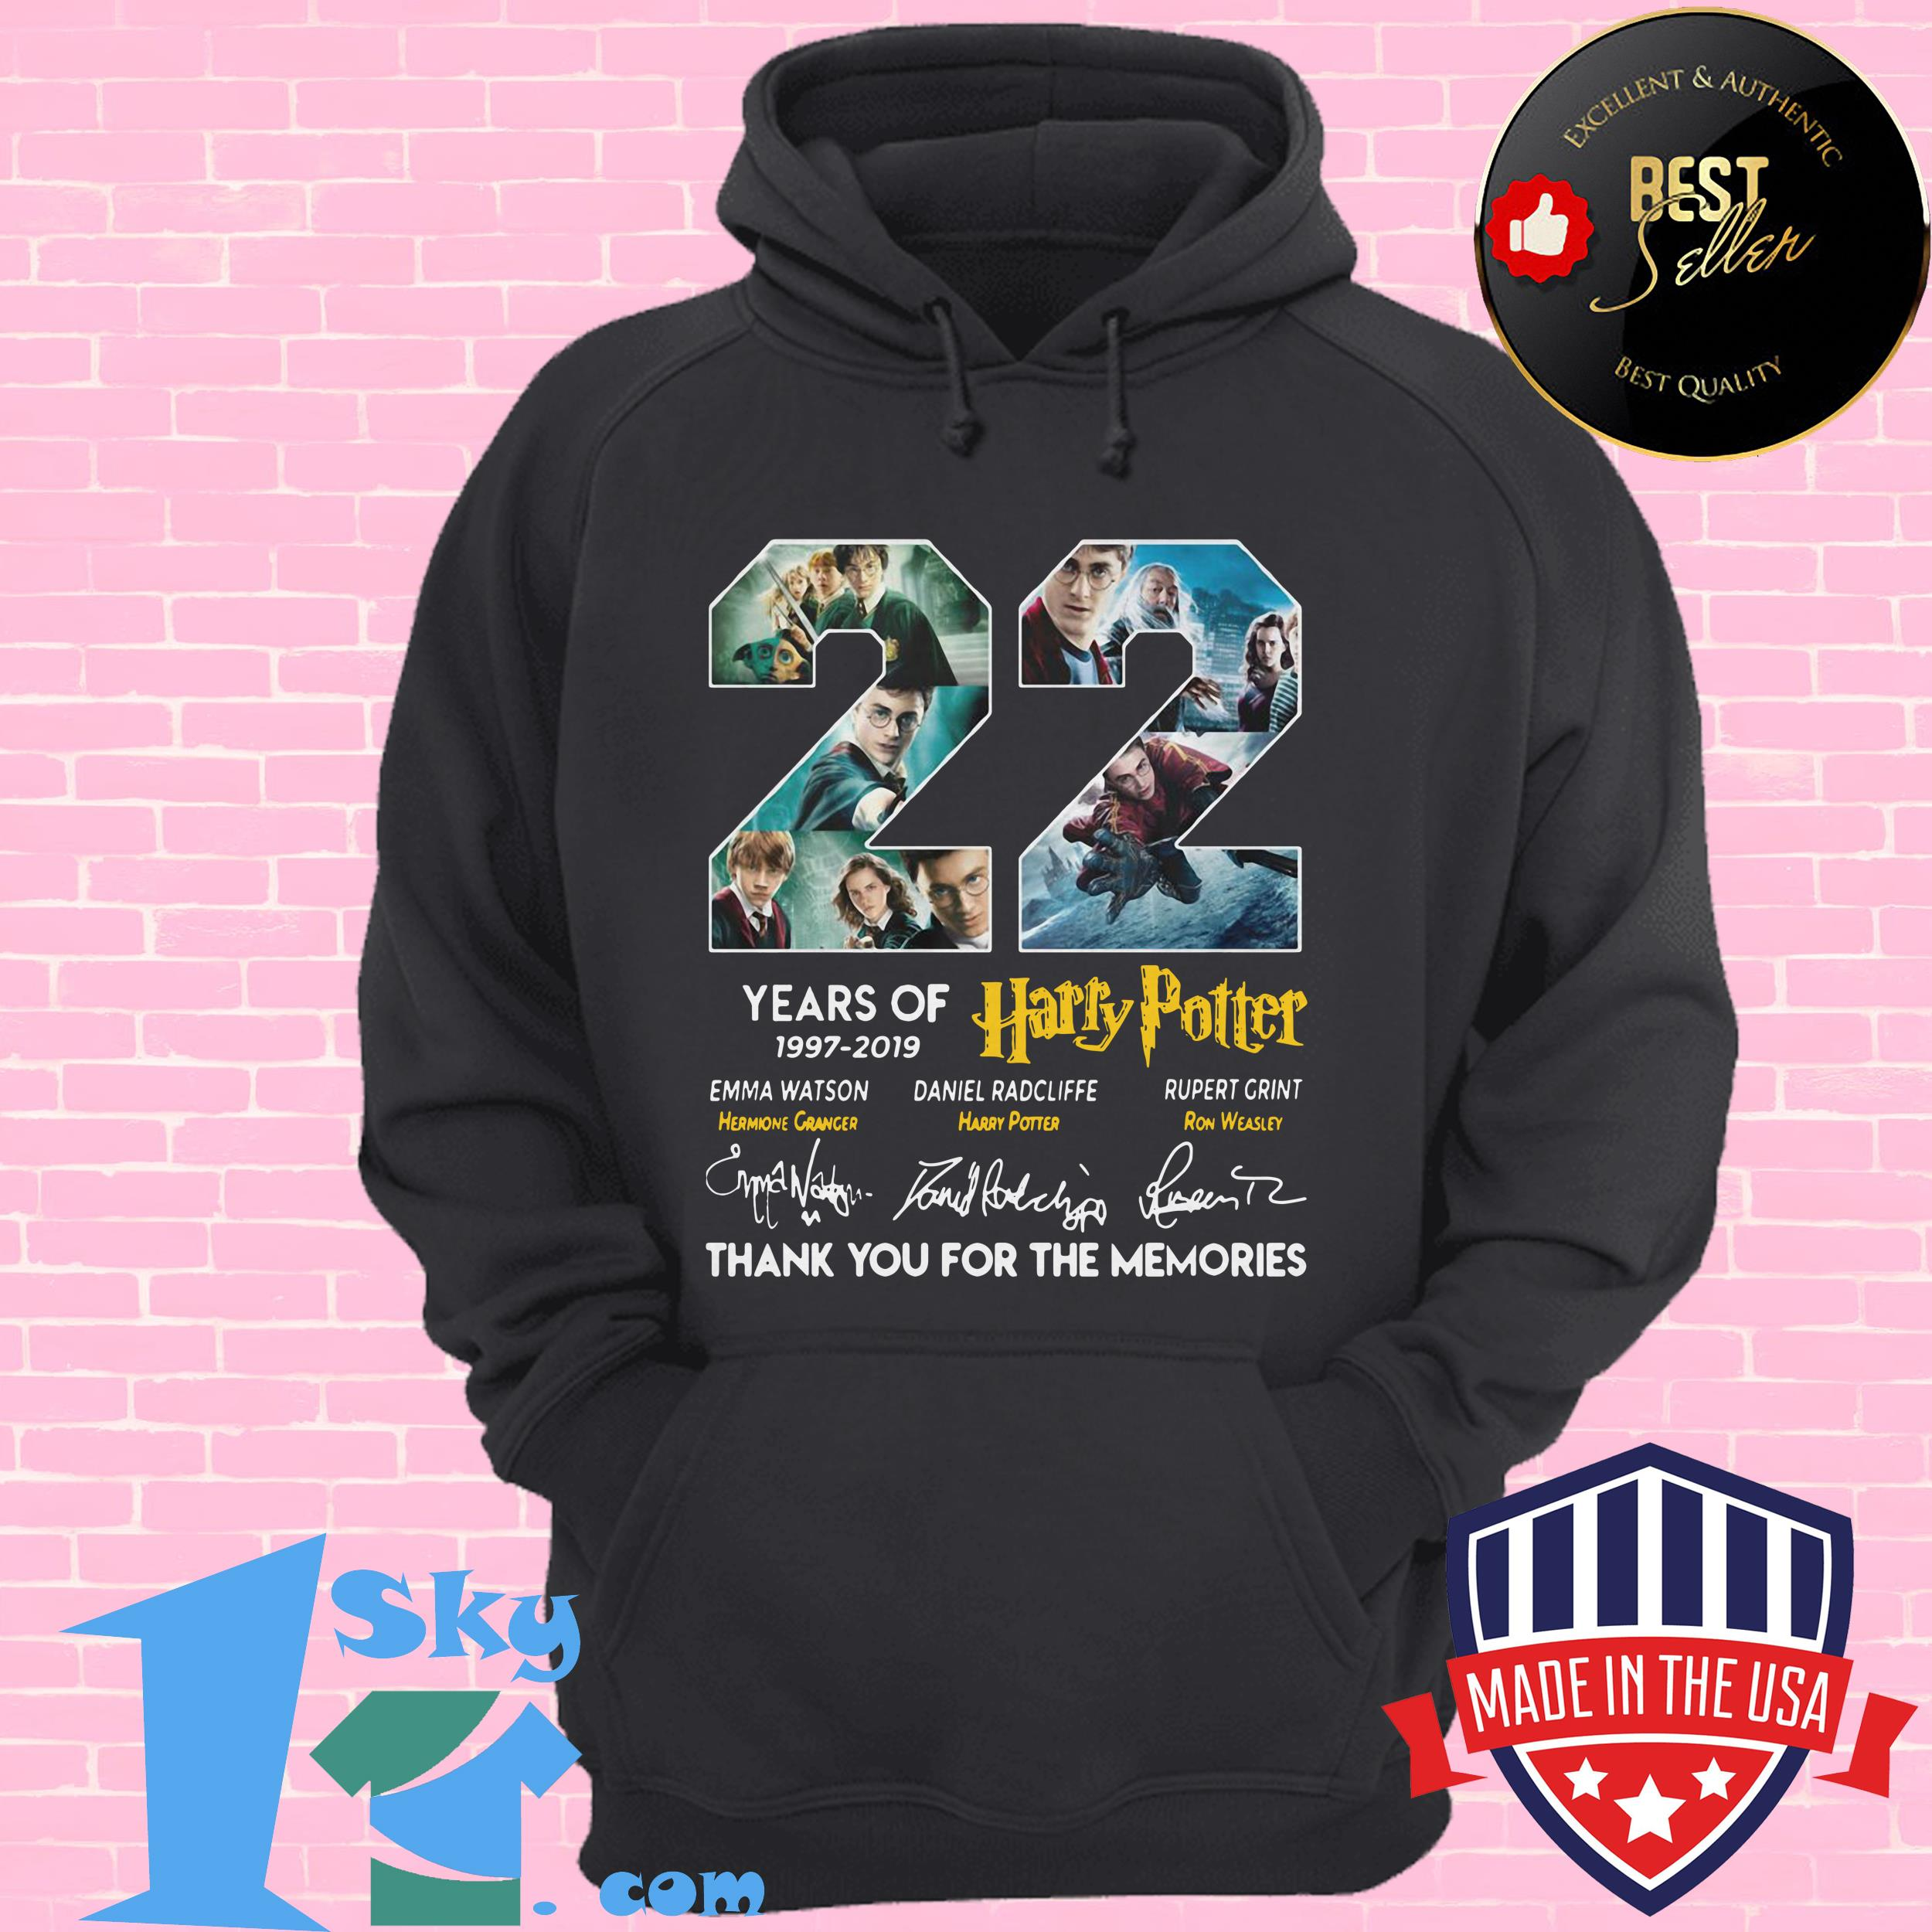 22 years of harry potter 1997 2019 signature hoodie - 22 Years Of Harry Potter 1997 – 2019 Signature shirt